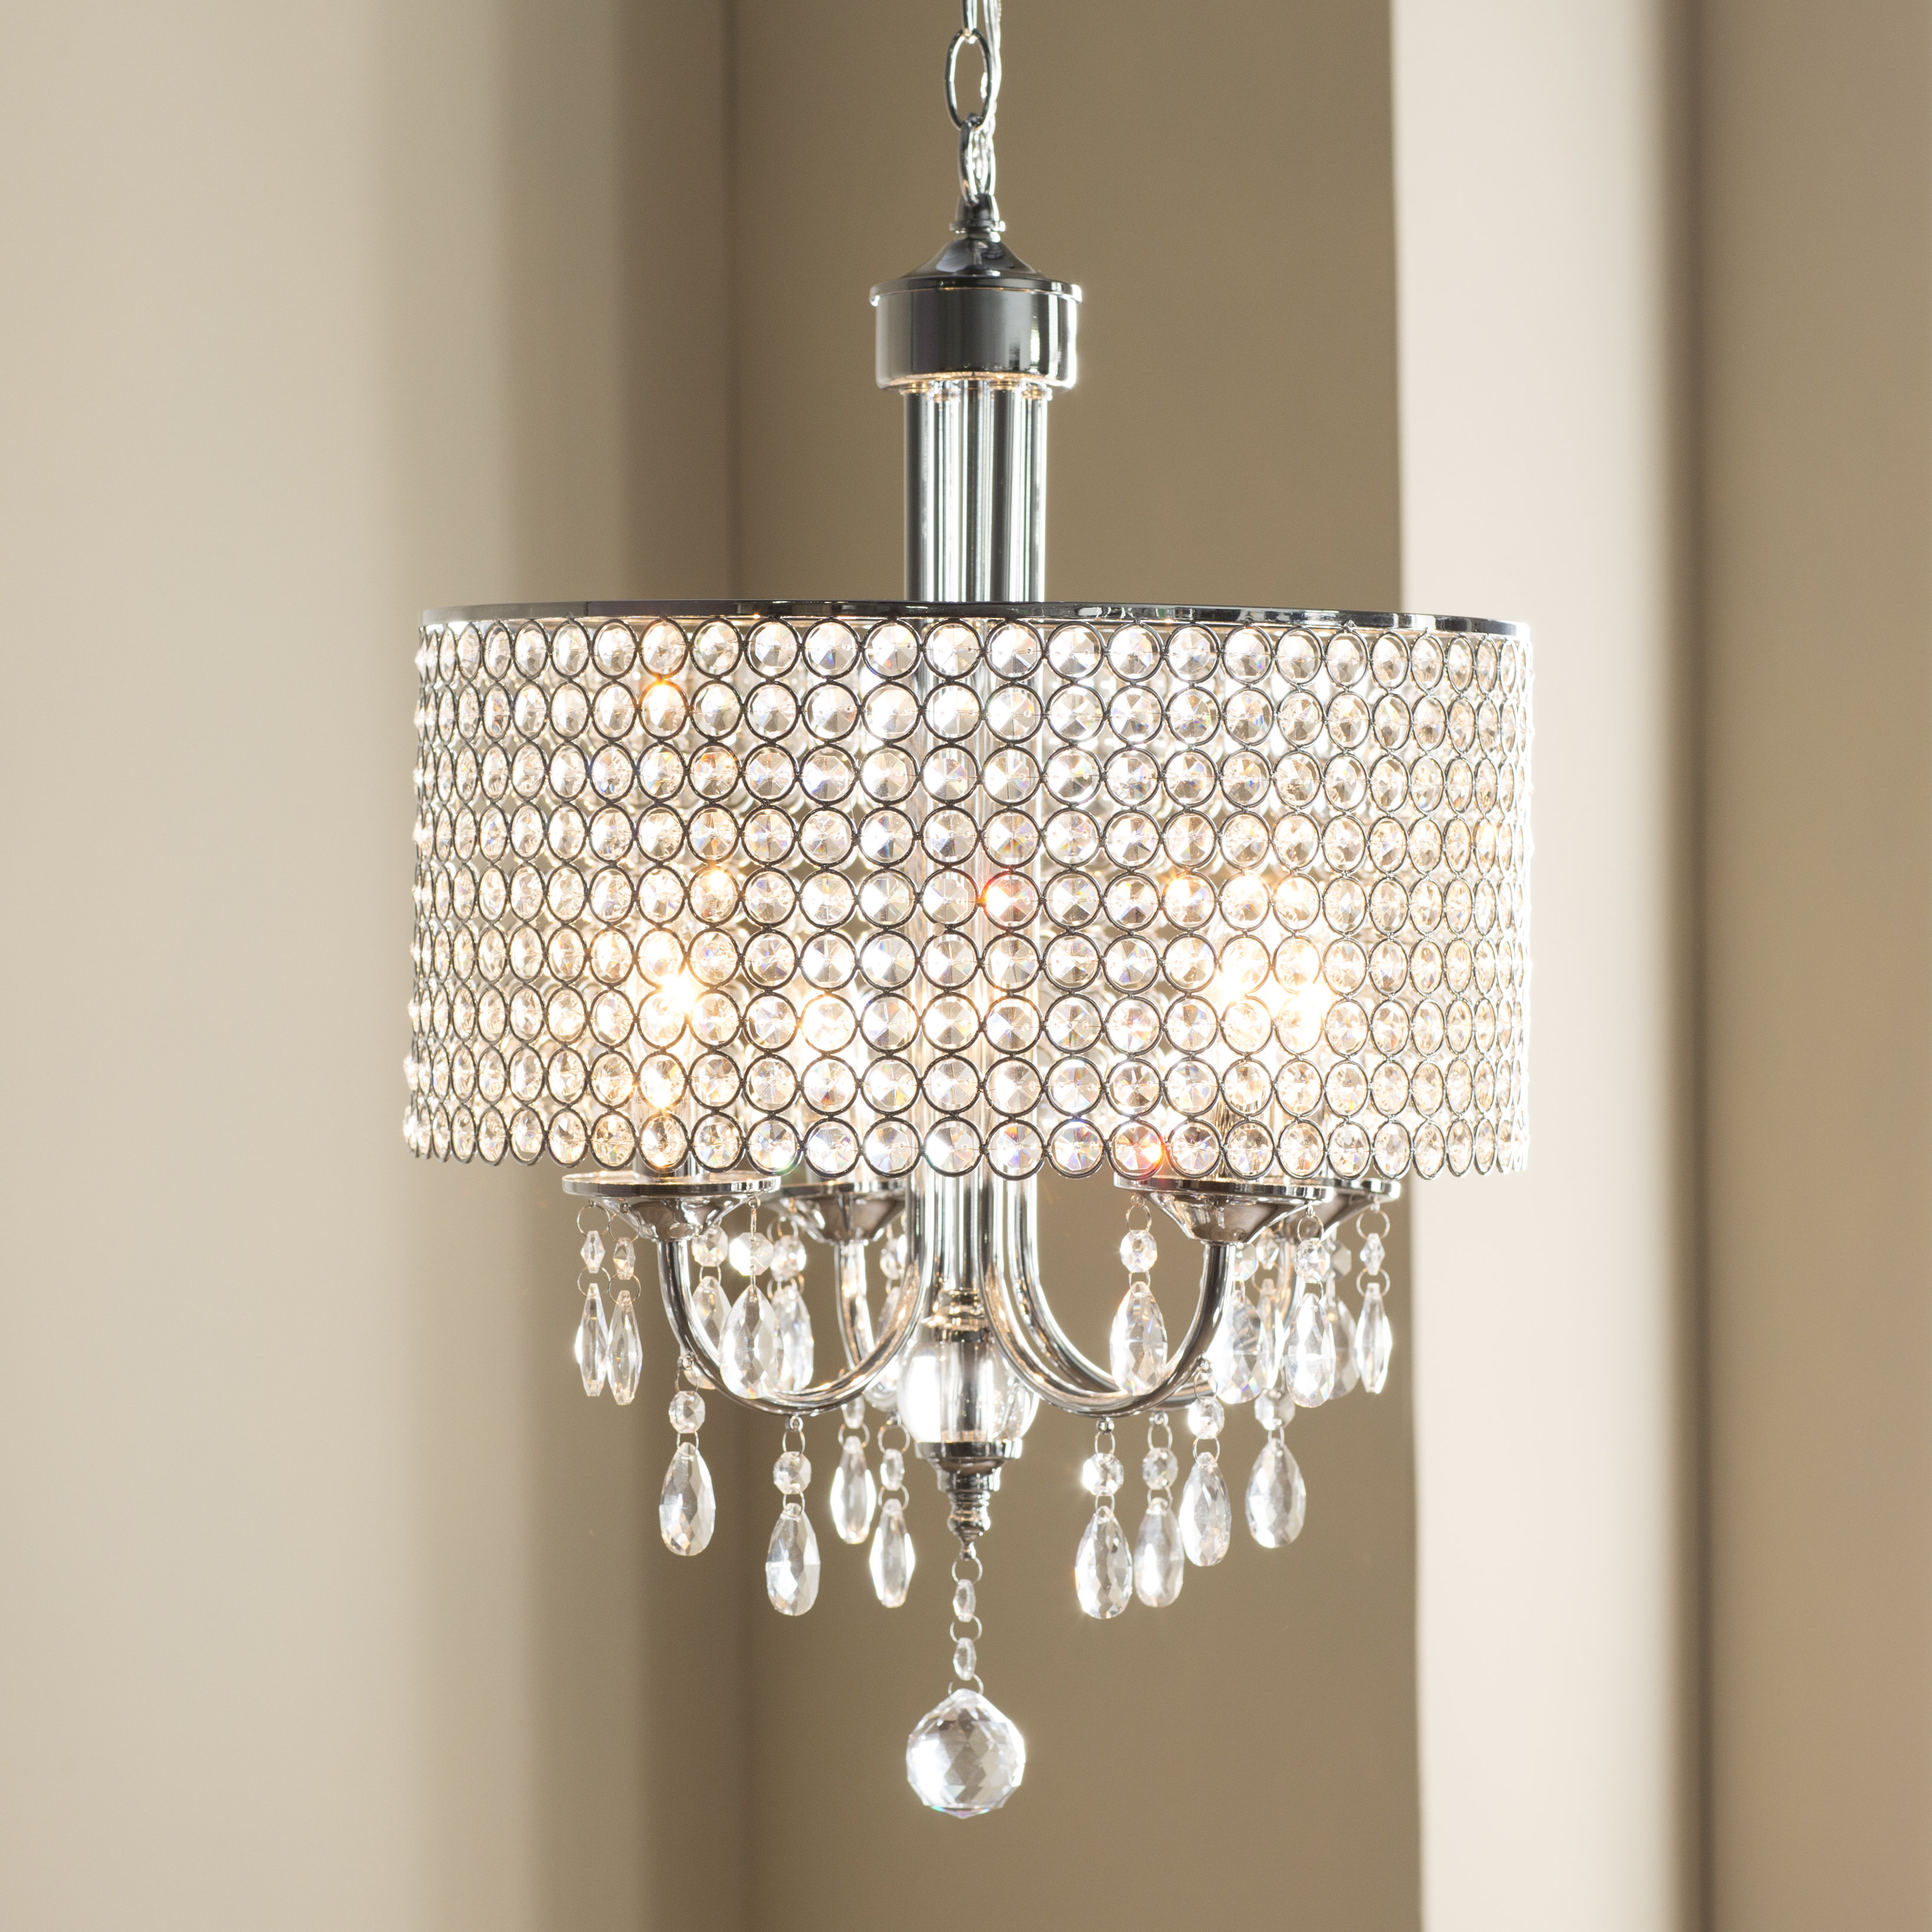 Bella 4 Light Crystal Chandelier With Albano 4 Light Crystal Chandeliers (Image 13 of 30)